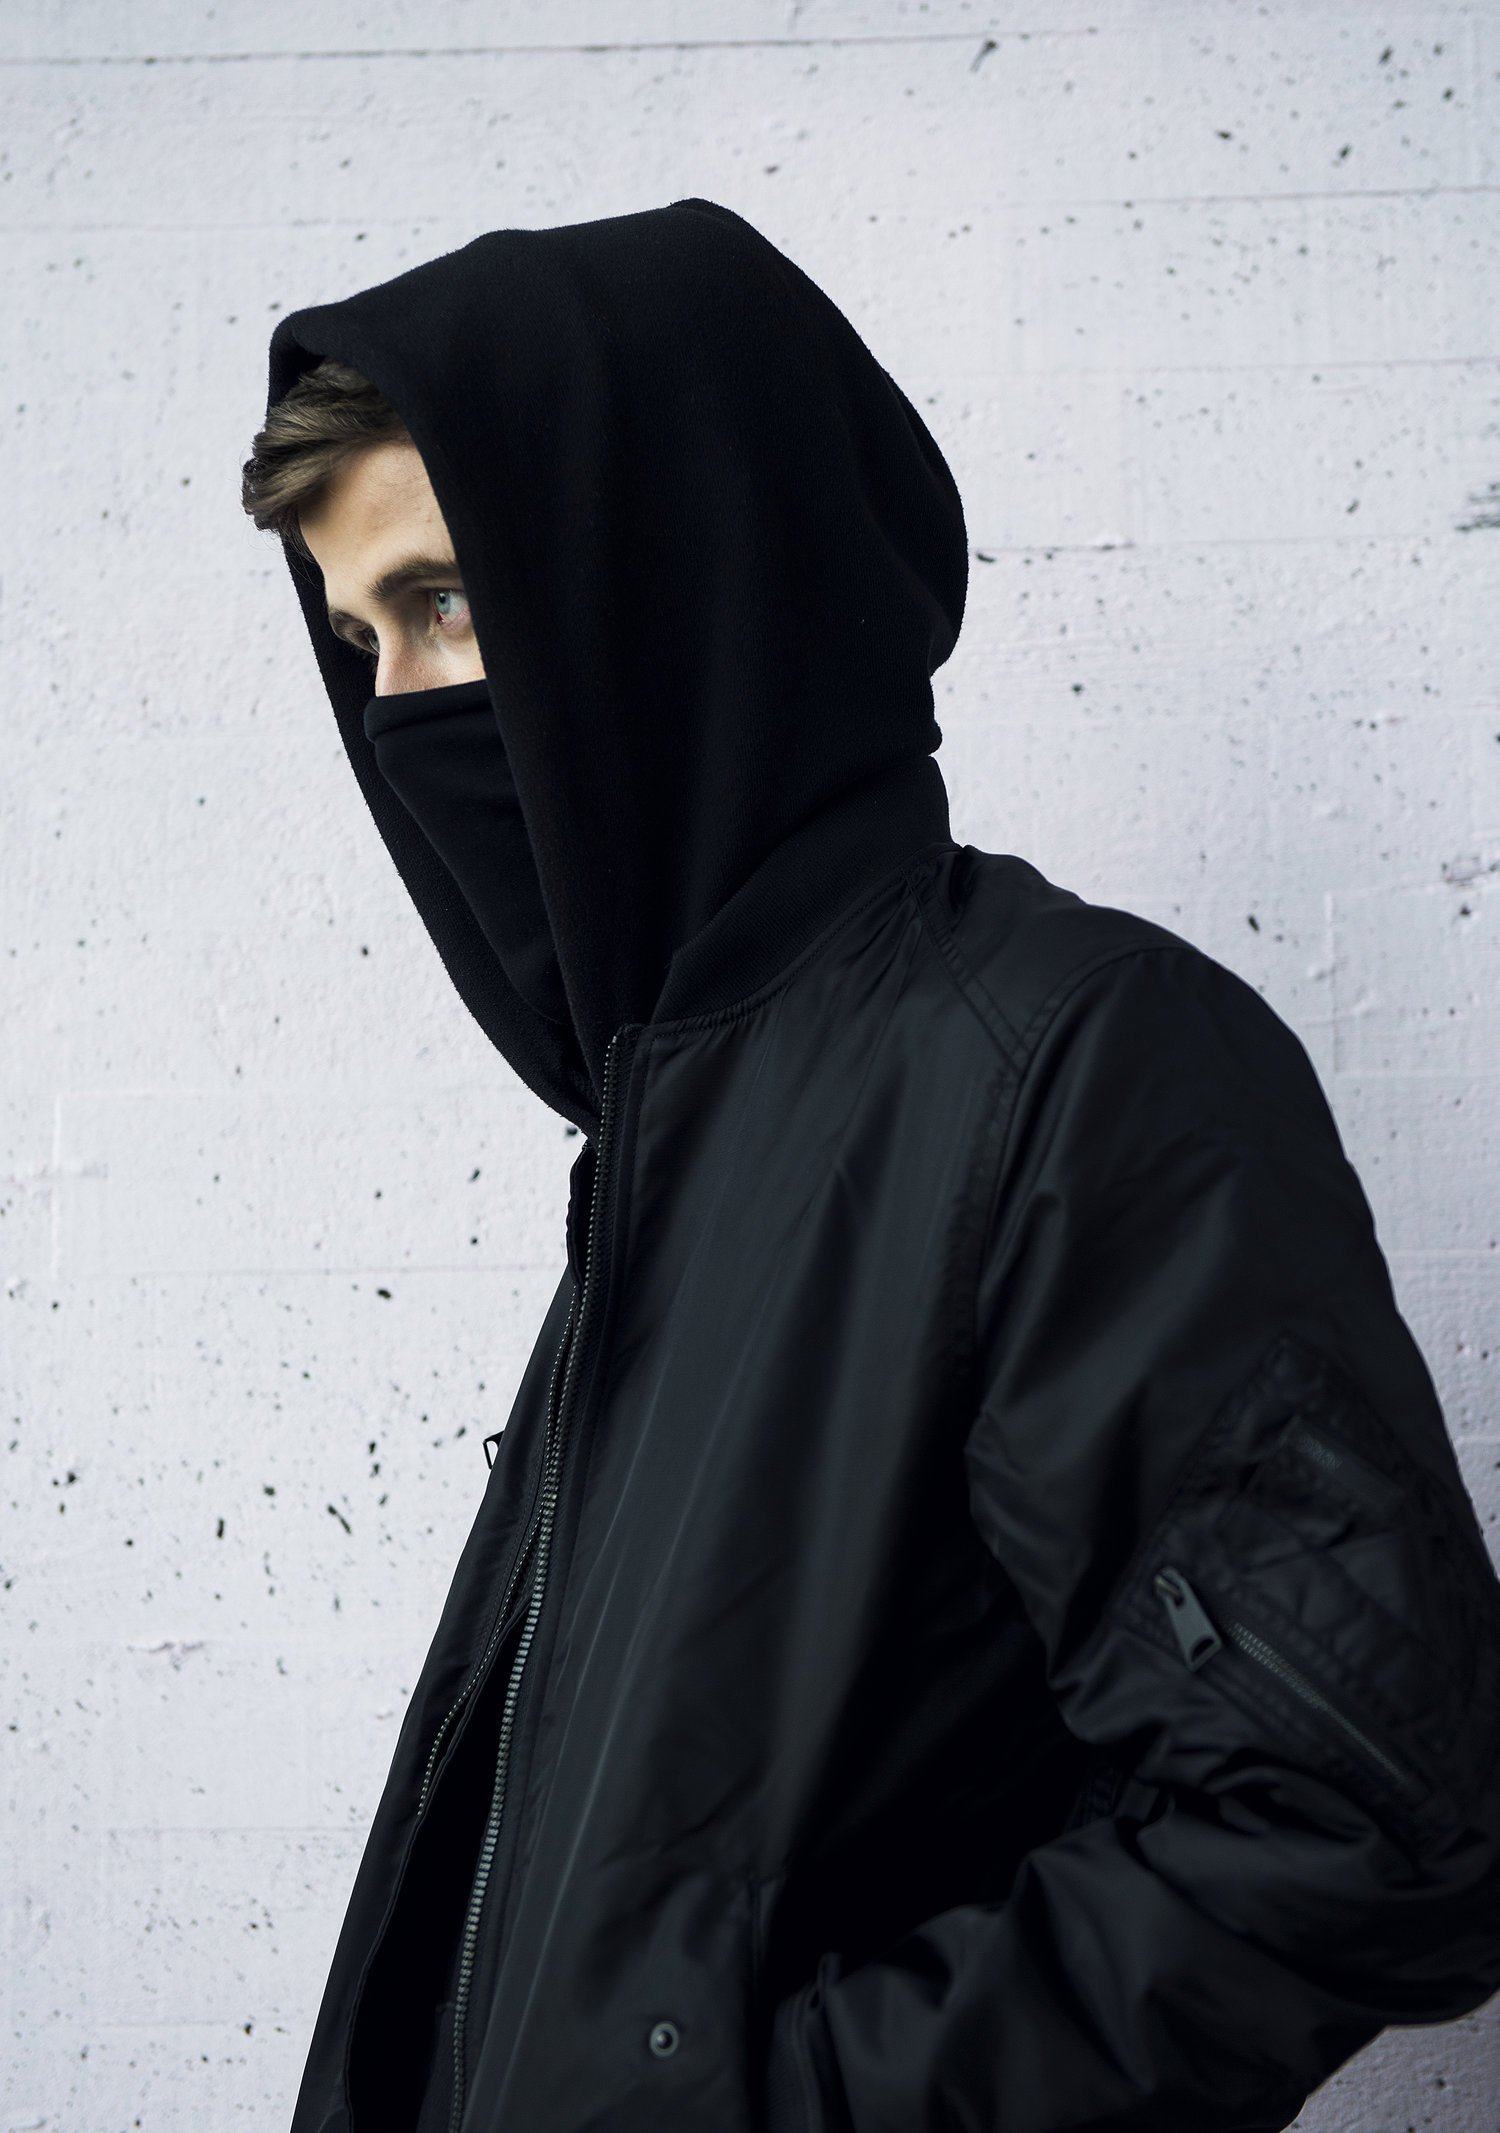 sky alan walker mp3 download